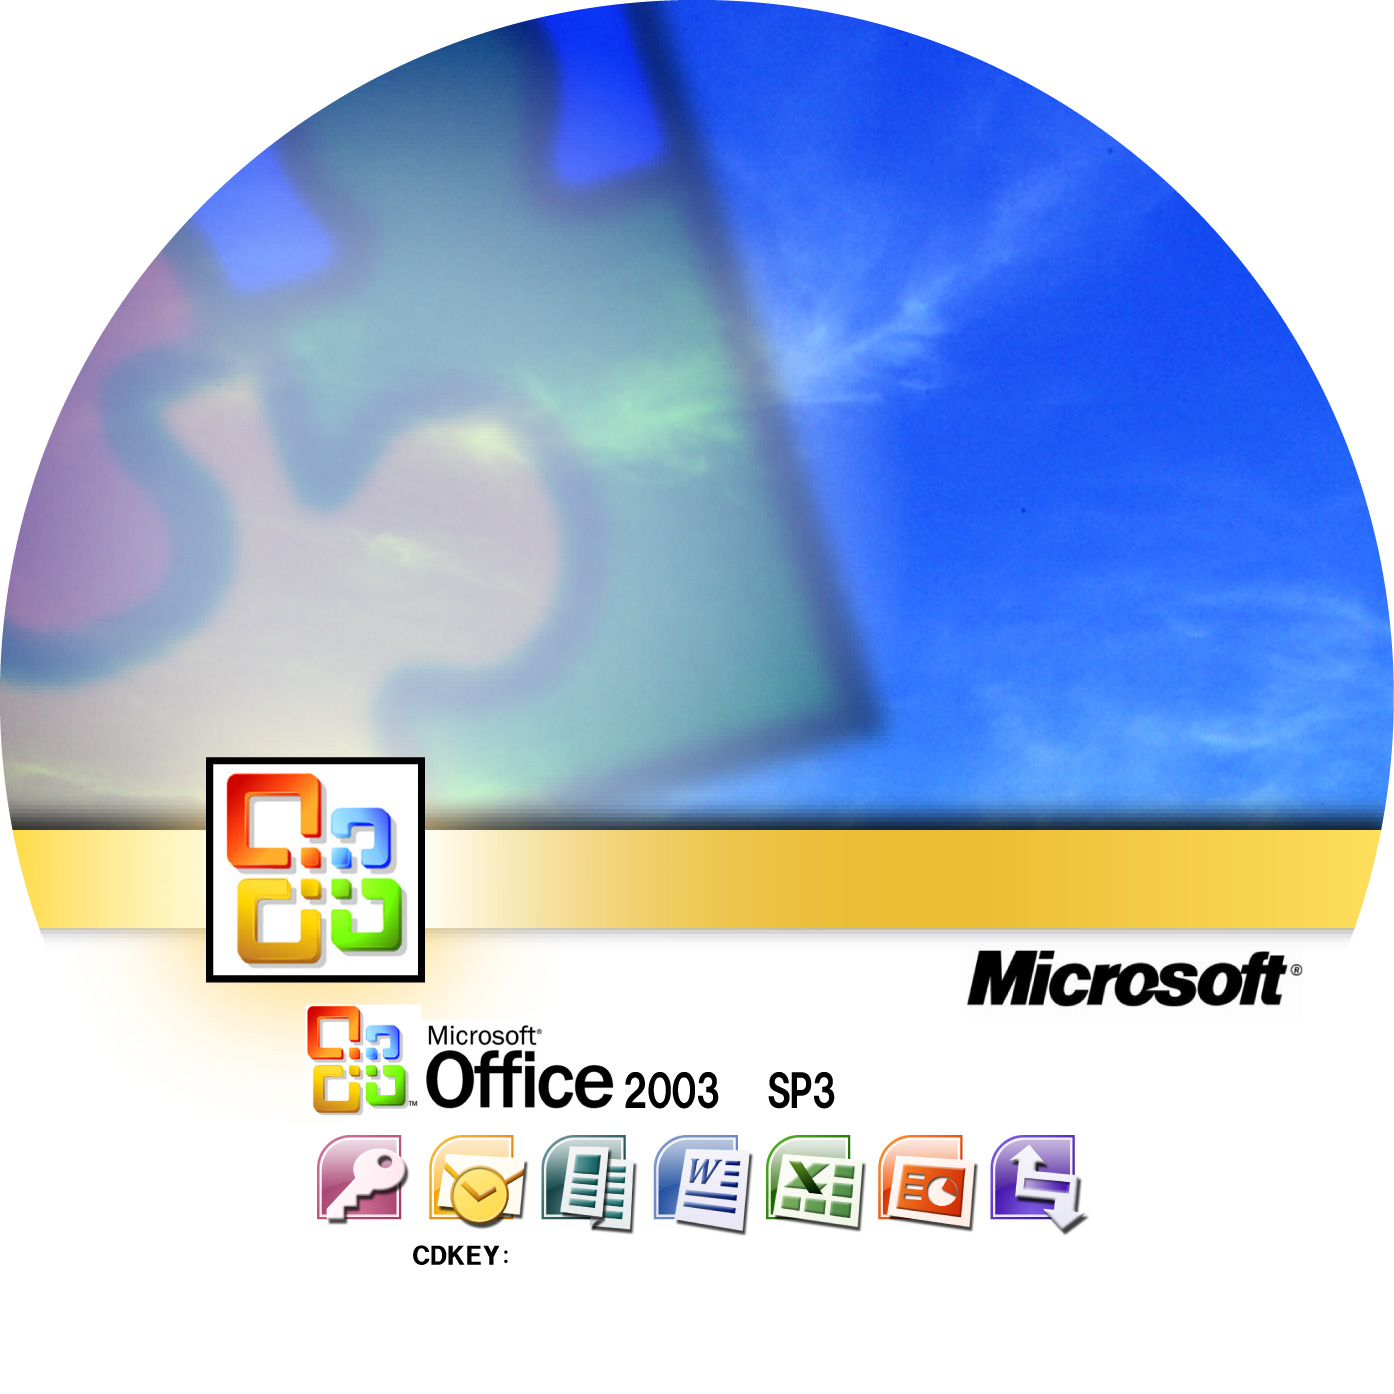 Ms office 2000 professional iso : tremenic